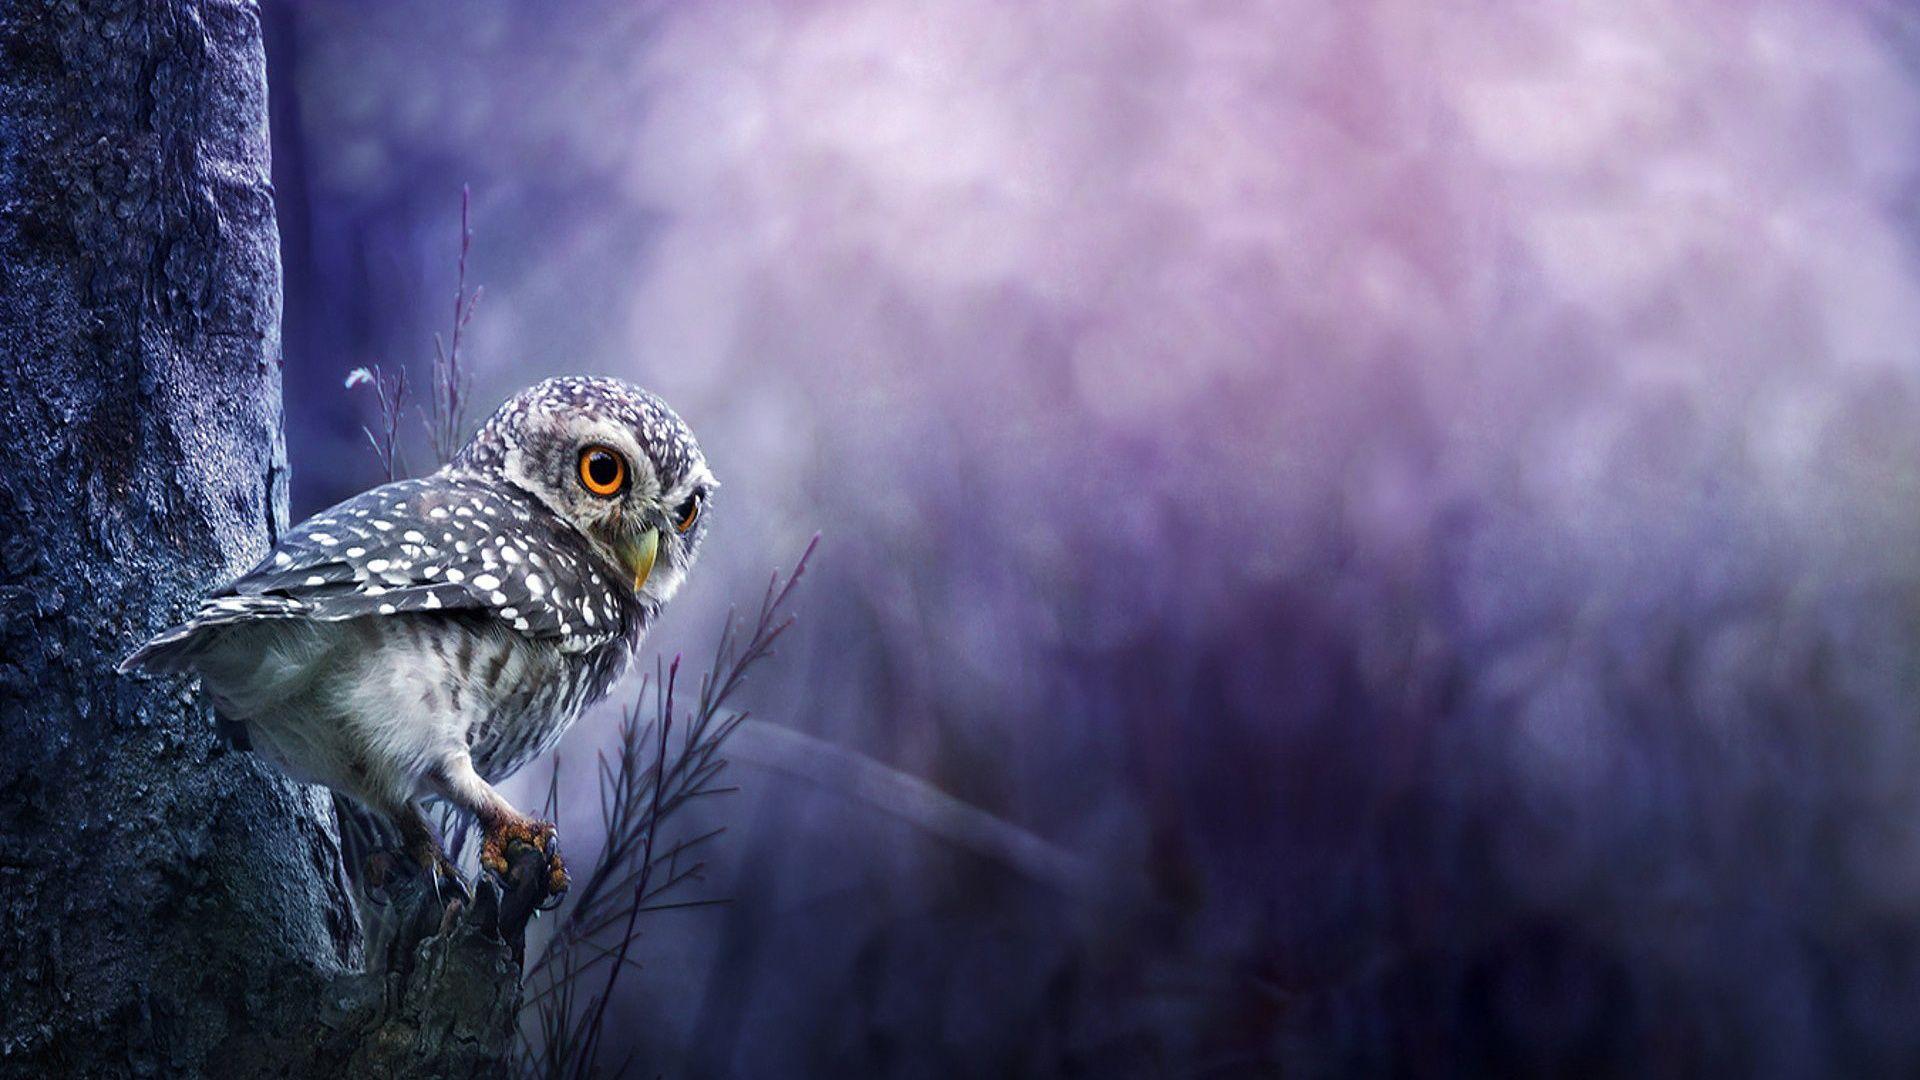 Baby Owl Desktop Wallpapers And Stock Photos Owl Wallpaper Baby Owls Cute Baby Owl